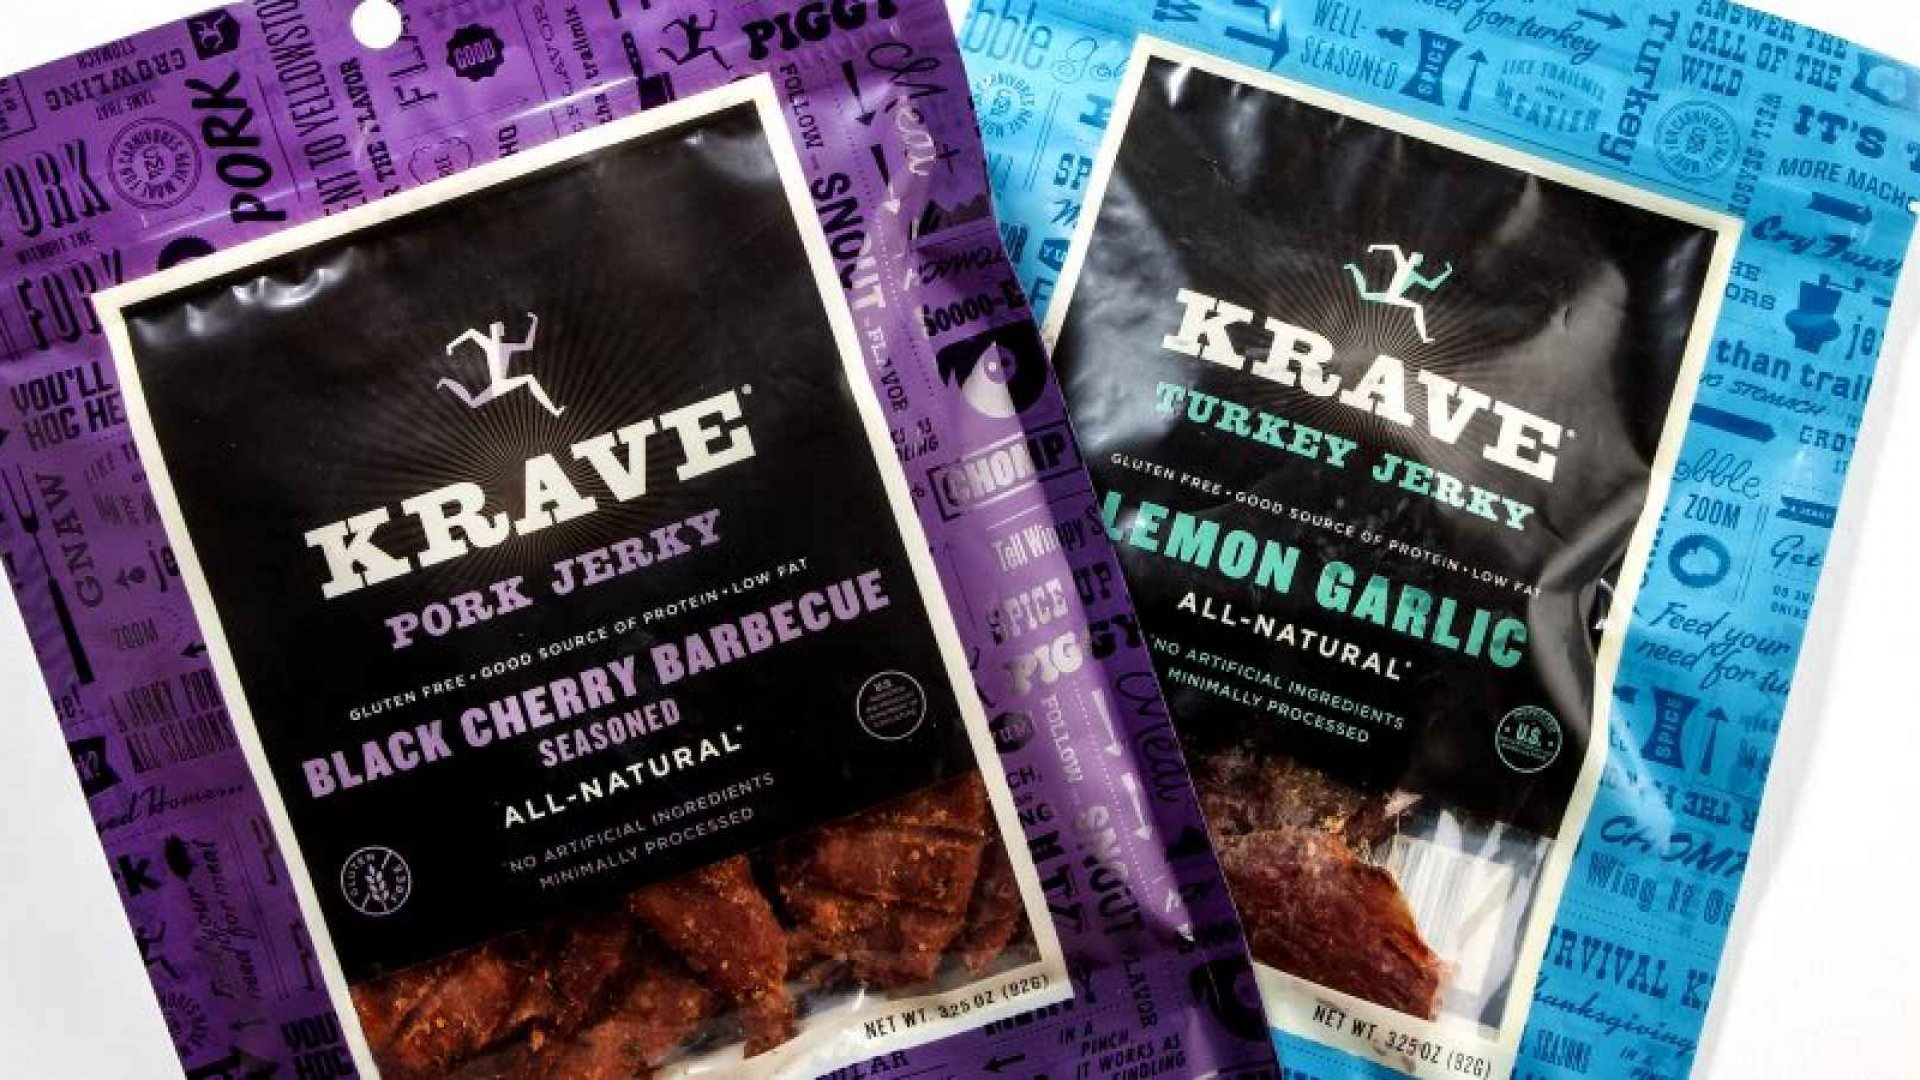 So When Is Hershey Going to Sell Chocolate-Covered Jerky?